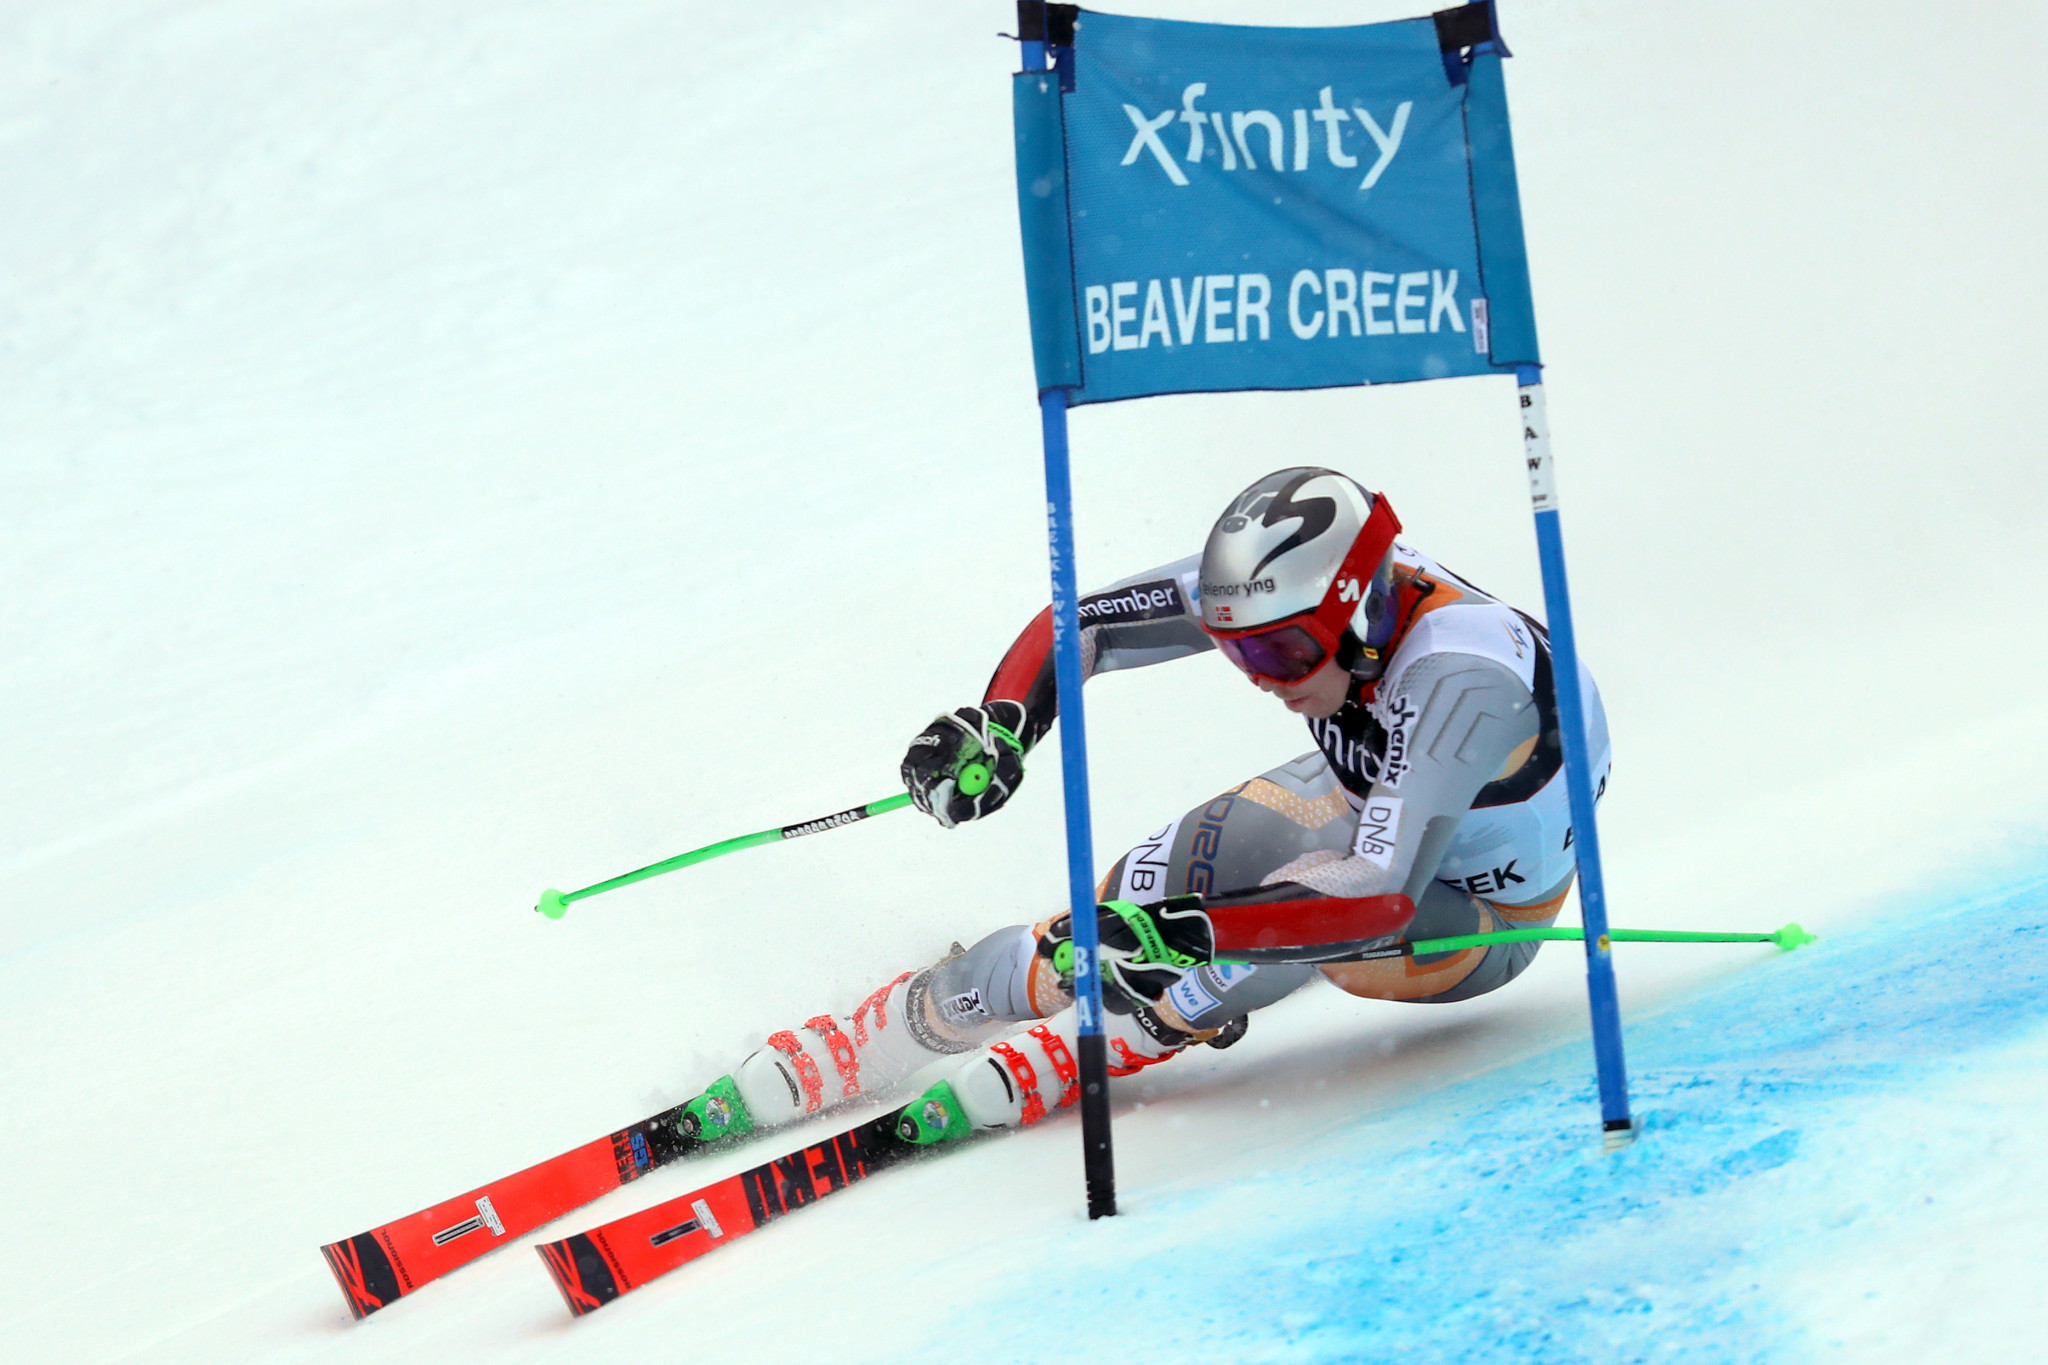 Men's super-G, downhill and giant slalom contests had been scheduled in Beaver Creek ©Getty Images